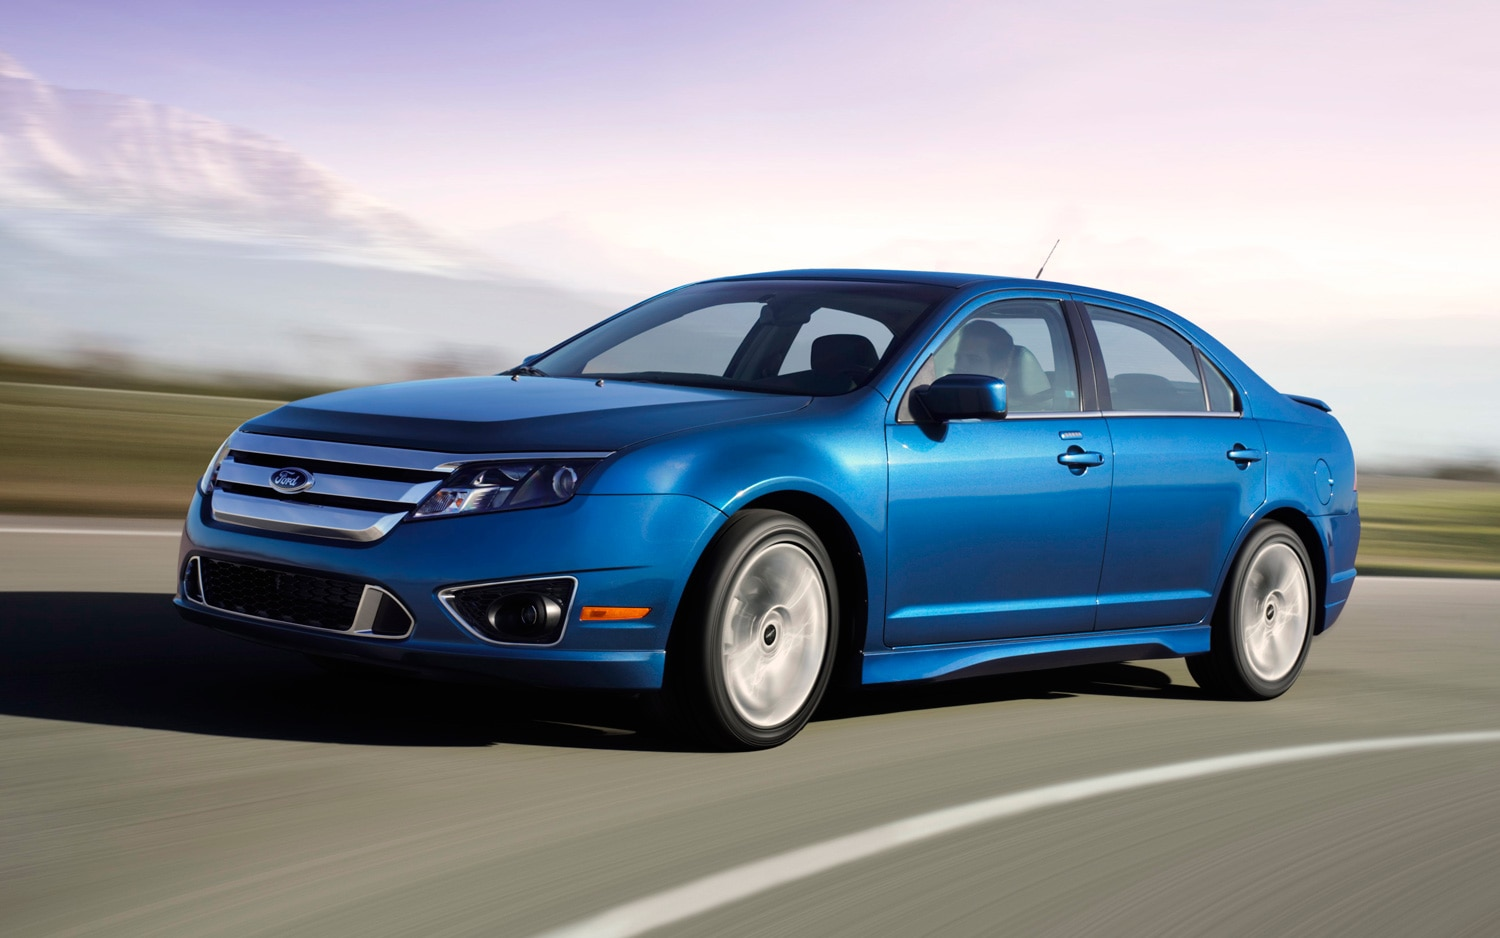 2011 Ford Fusion Sport Front View1